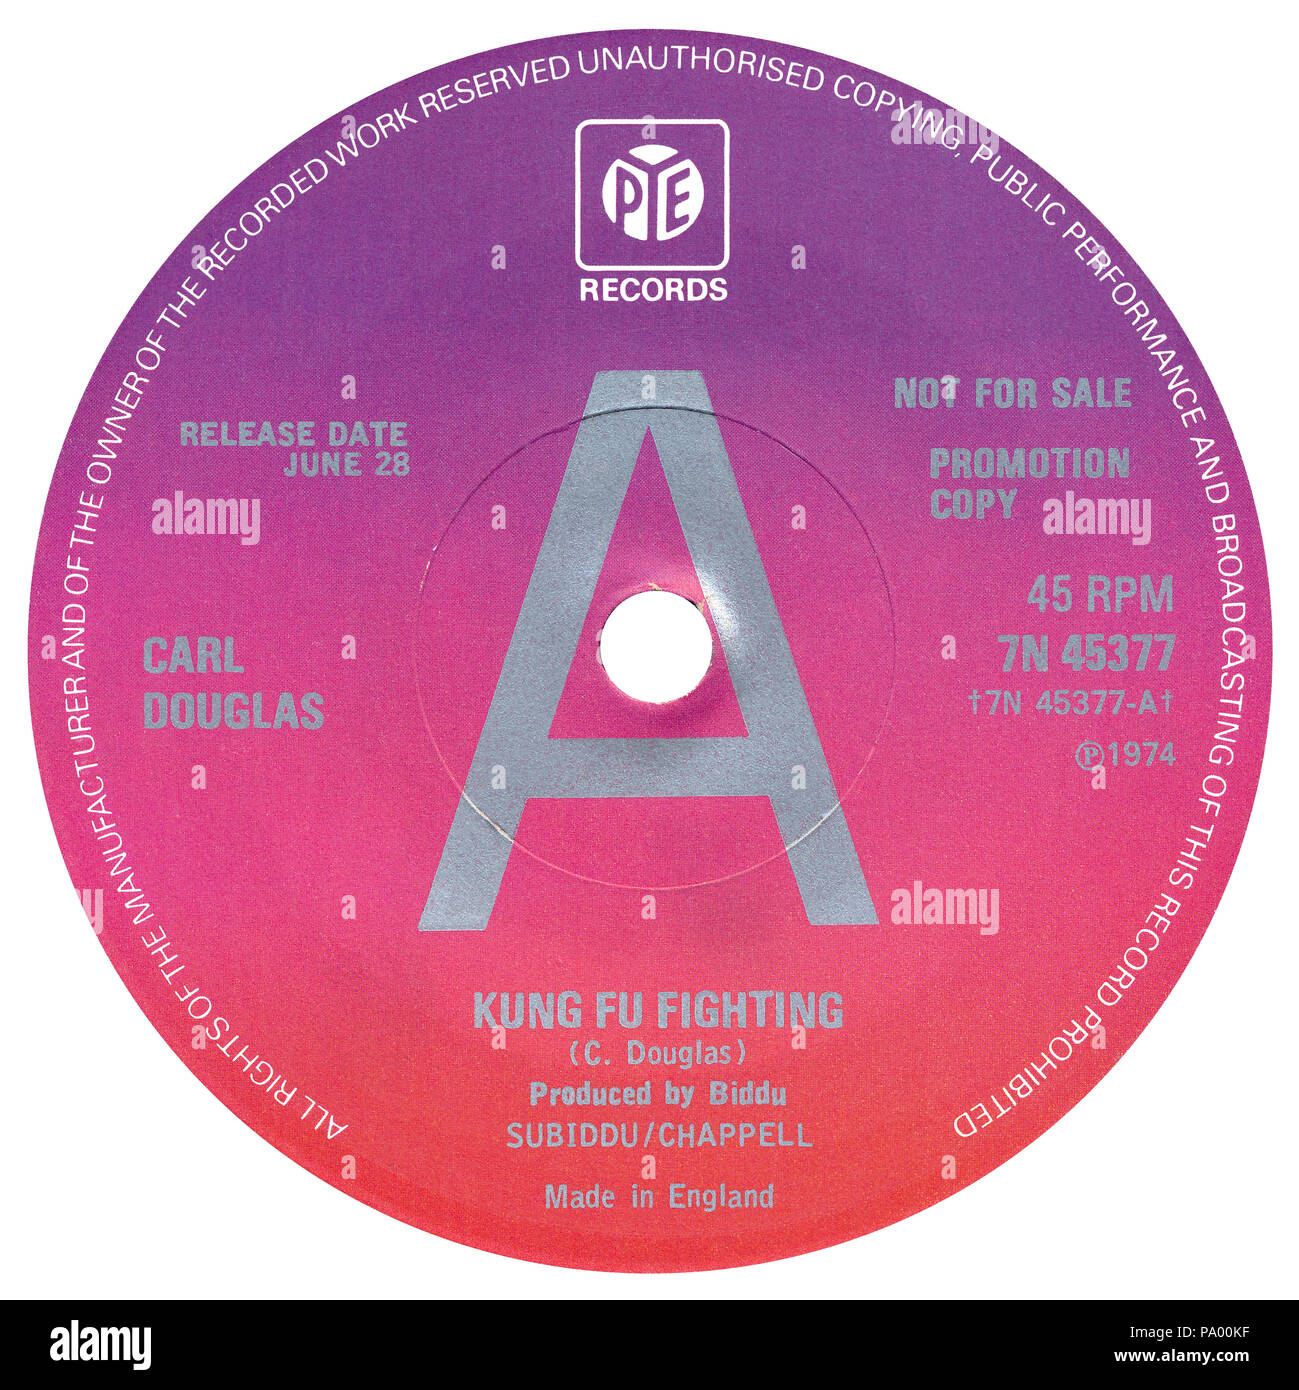 "UK 45 rpm promotional 7"" single label of Kung Fu Fighting by Carl Douglas on the Pye label from 1974. Written by Carl Douglas and produced by Biddu. Stock Photo"